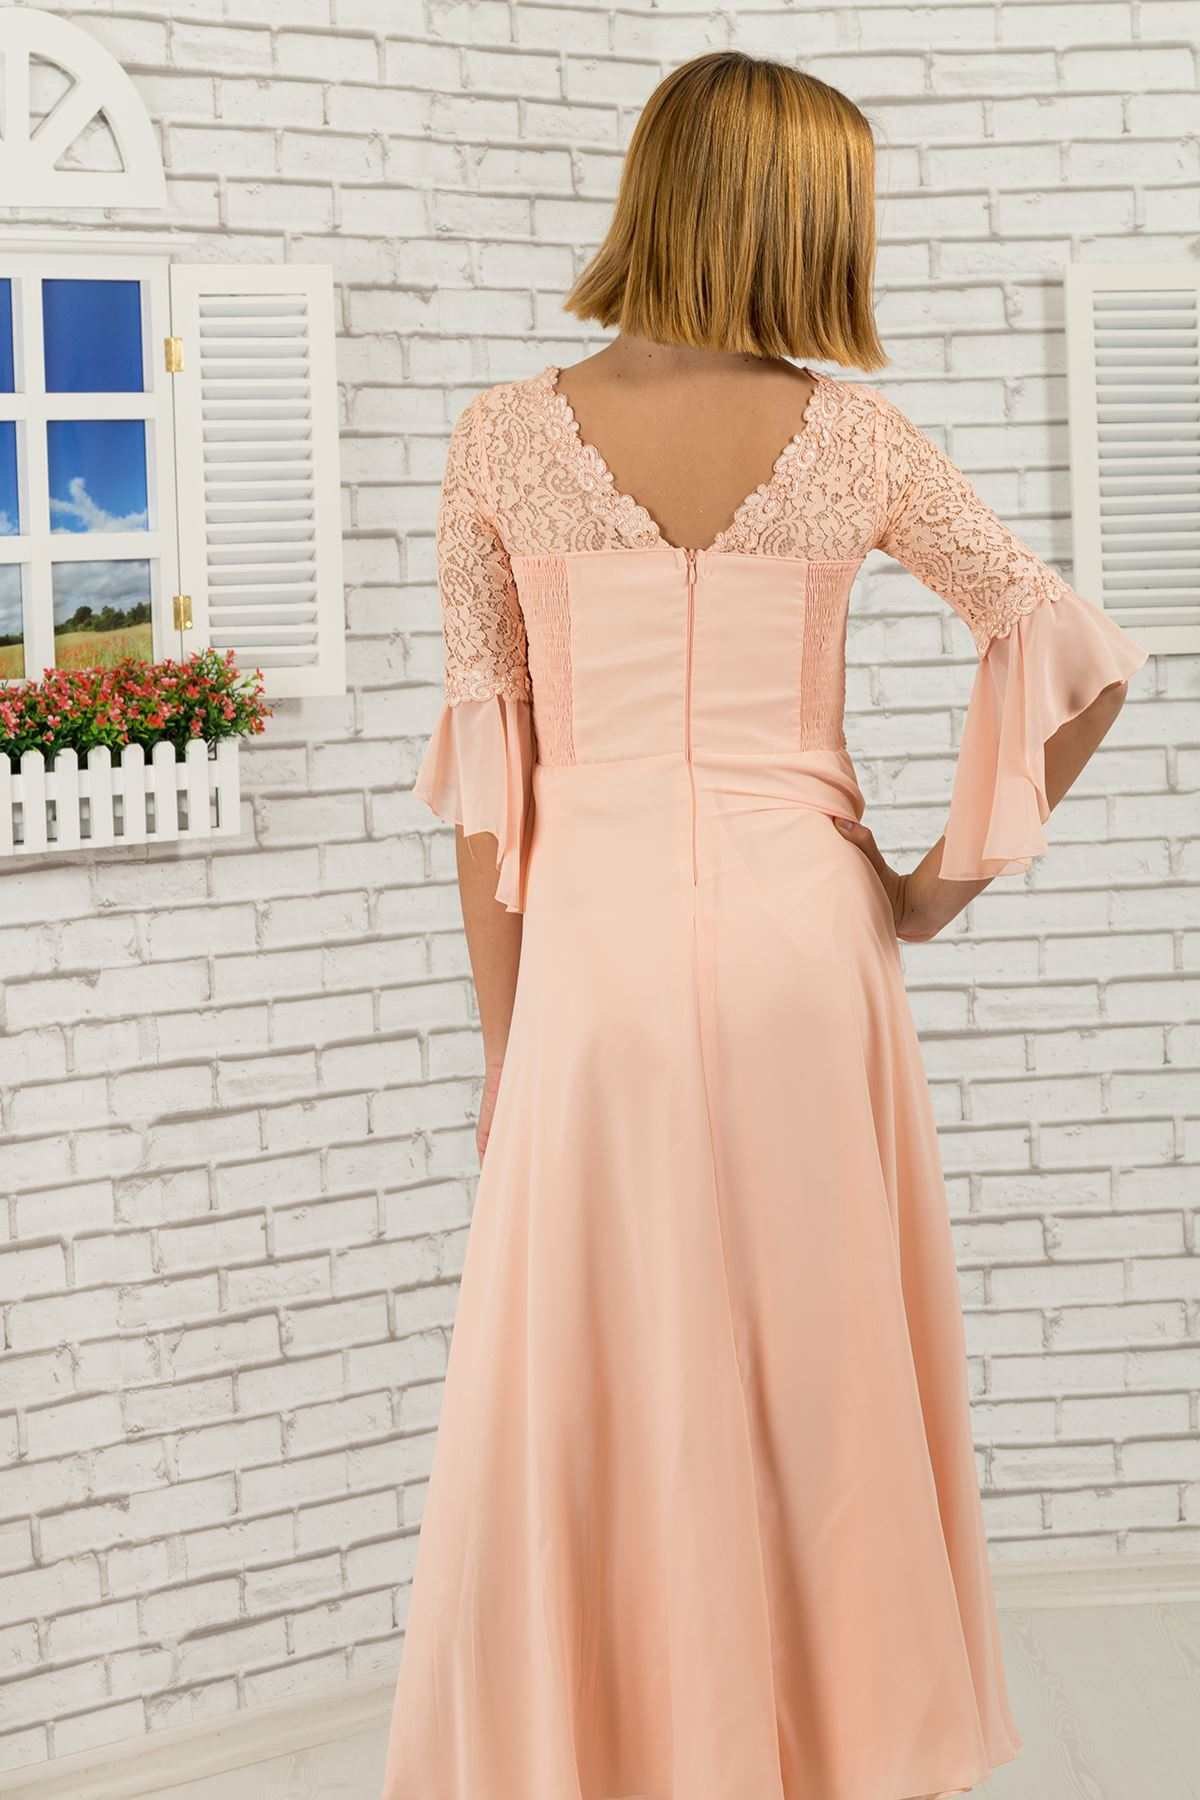 Lace body and sleeves, floral detail at the waist, Girl Evening Dress 463 Salmon